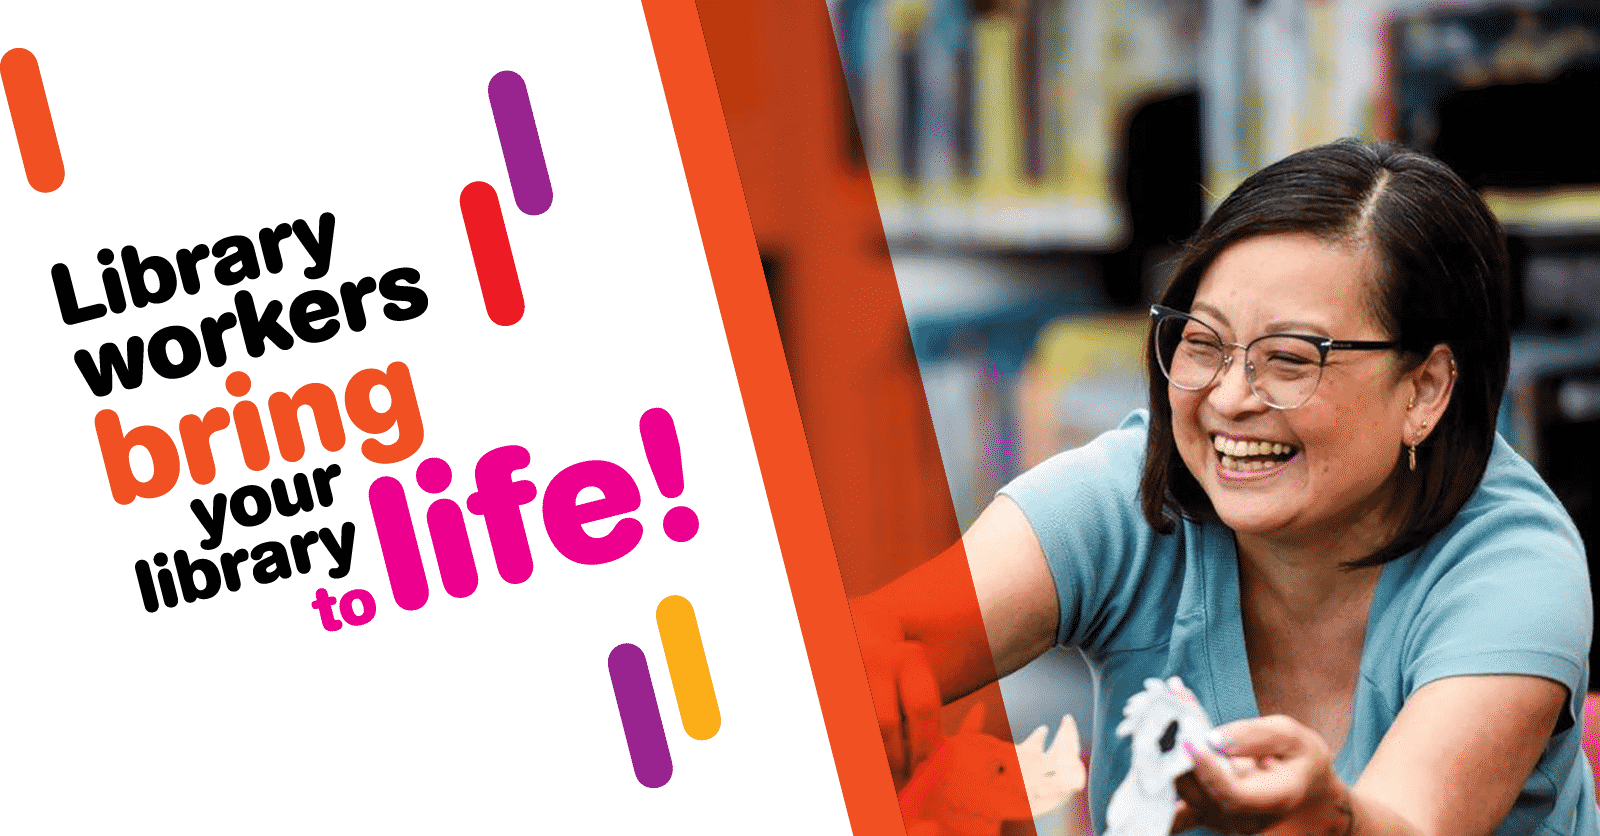 CUPE celebrates library month | Canadian Union of Public Employees